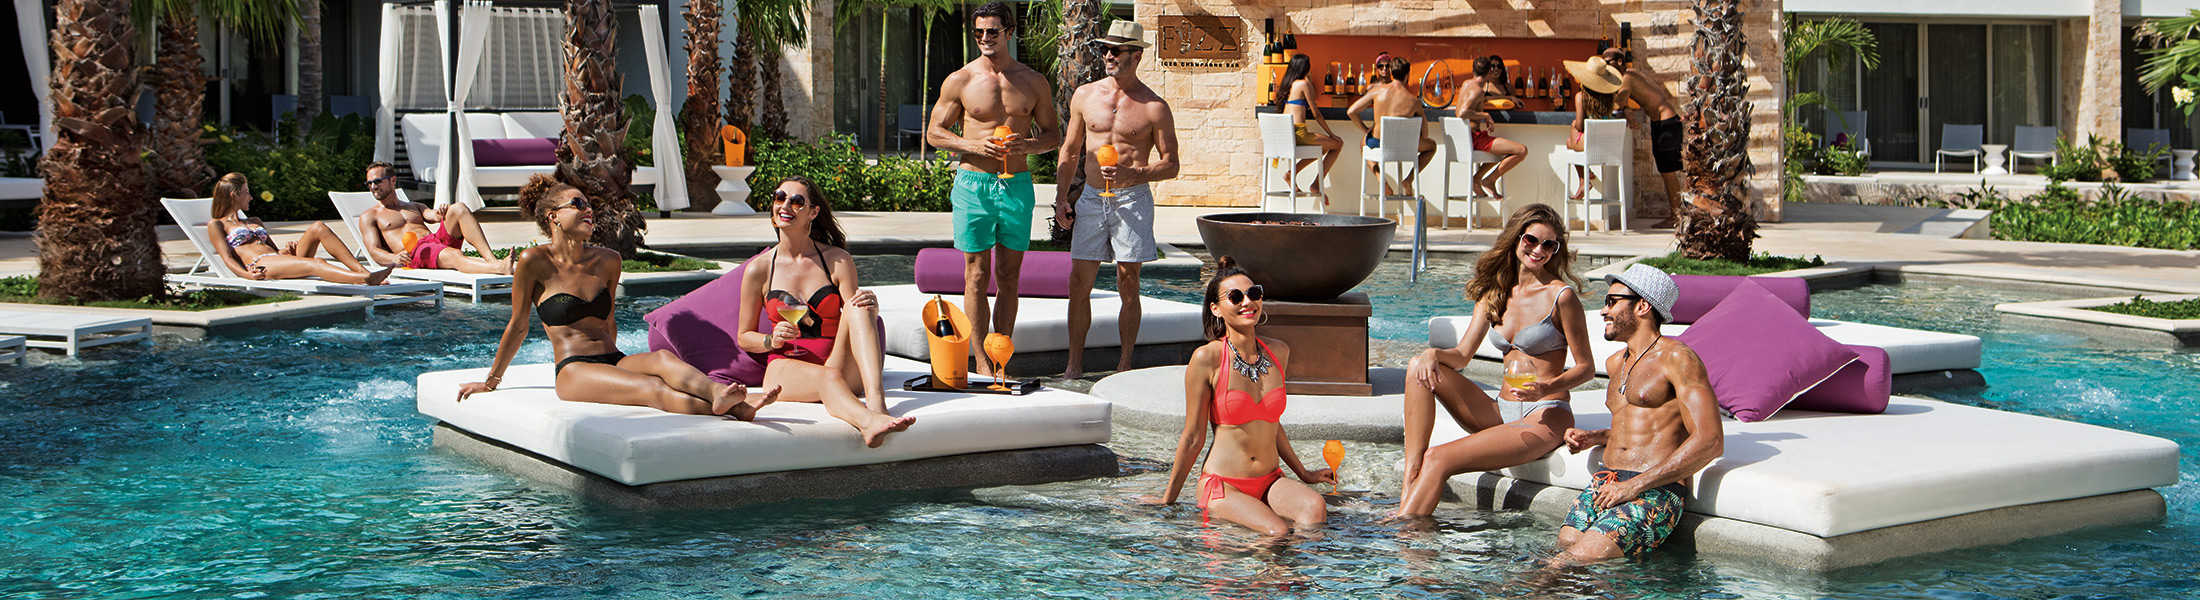 Adults relaxing in the pool at Breathless Riviera Cancun